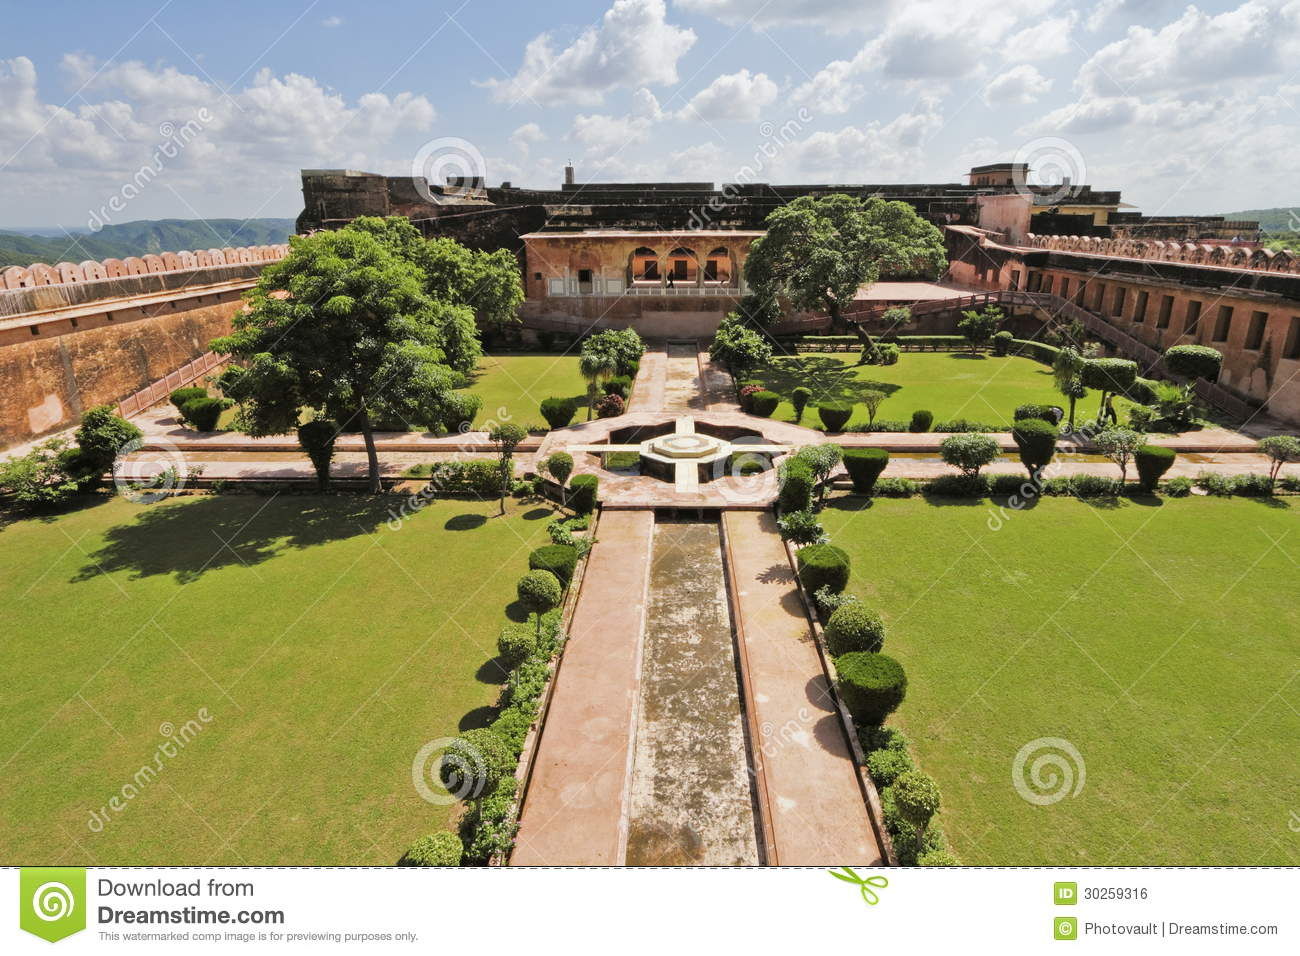 Charbagh Garden At Jaigarh Fort Royalty Free Stock Image Image 30259316